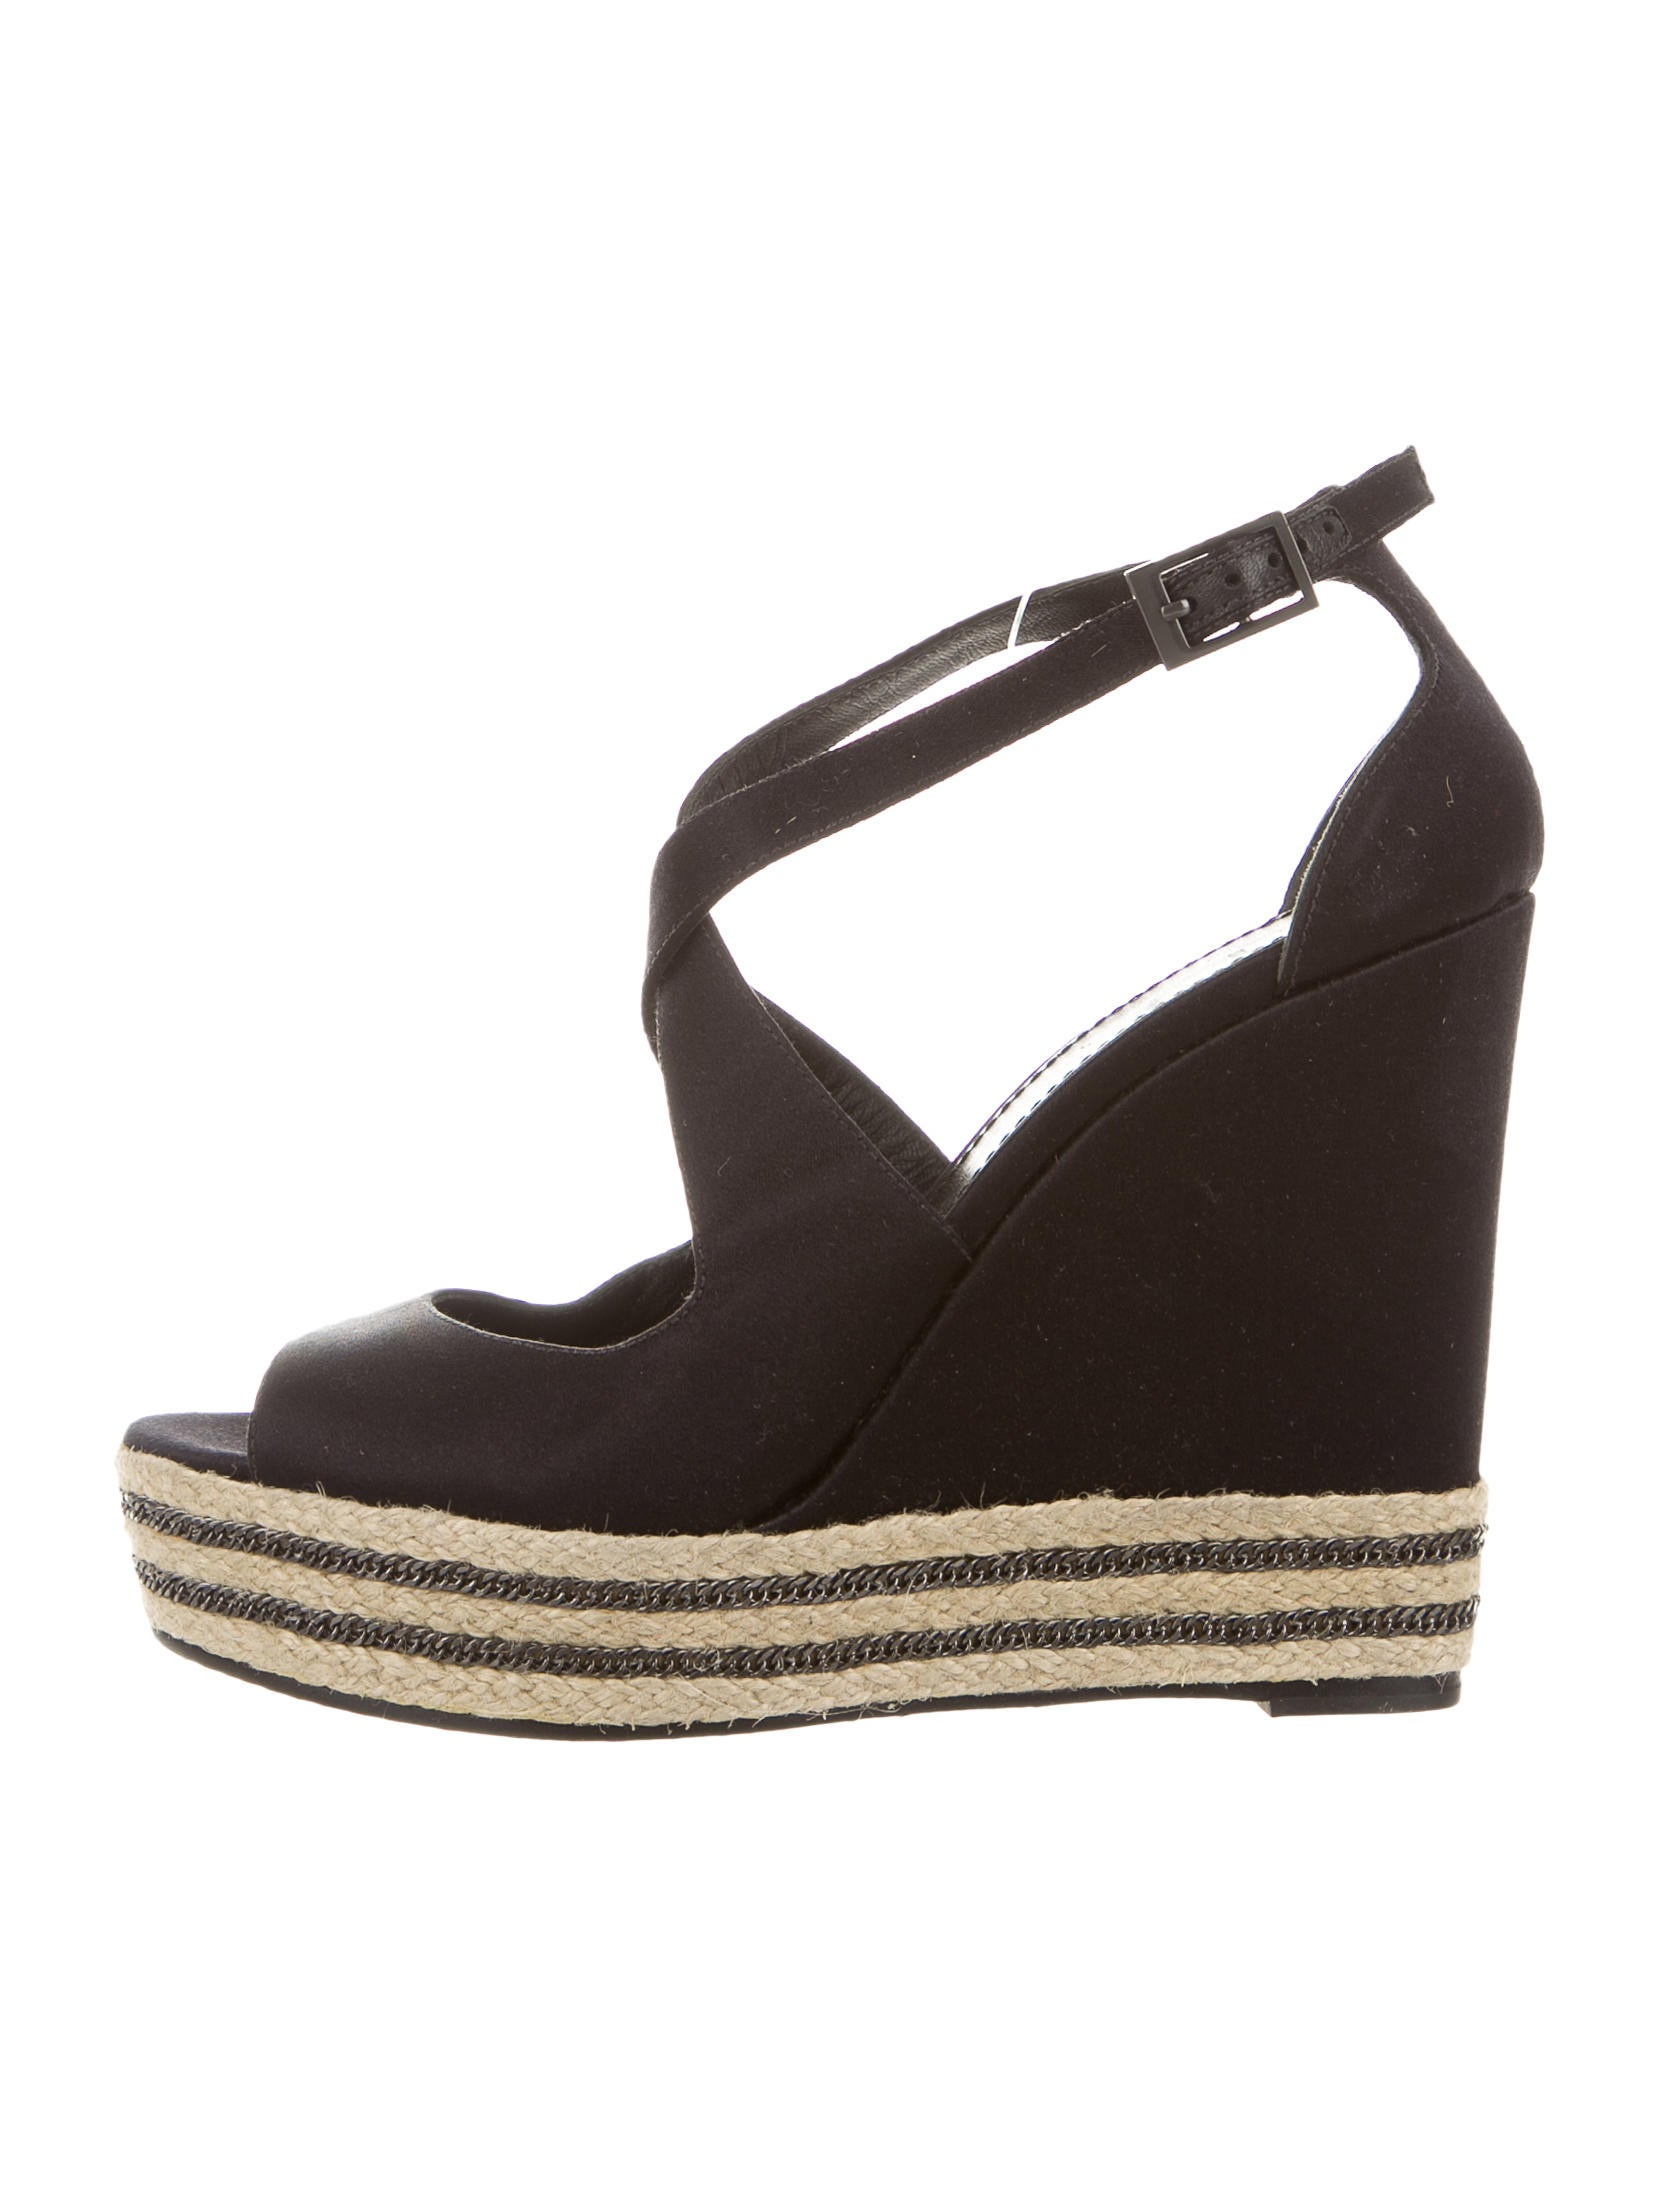 b brian atwood satin wedge sandals shoes wbn21724